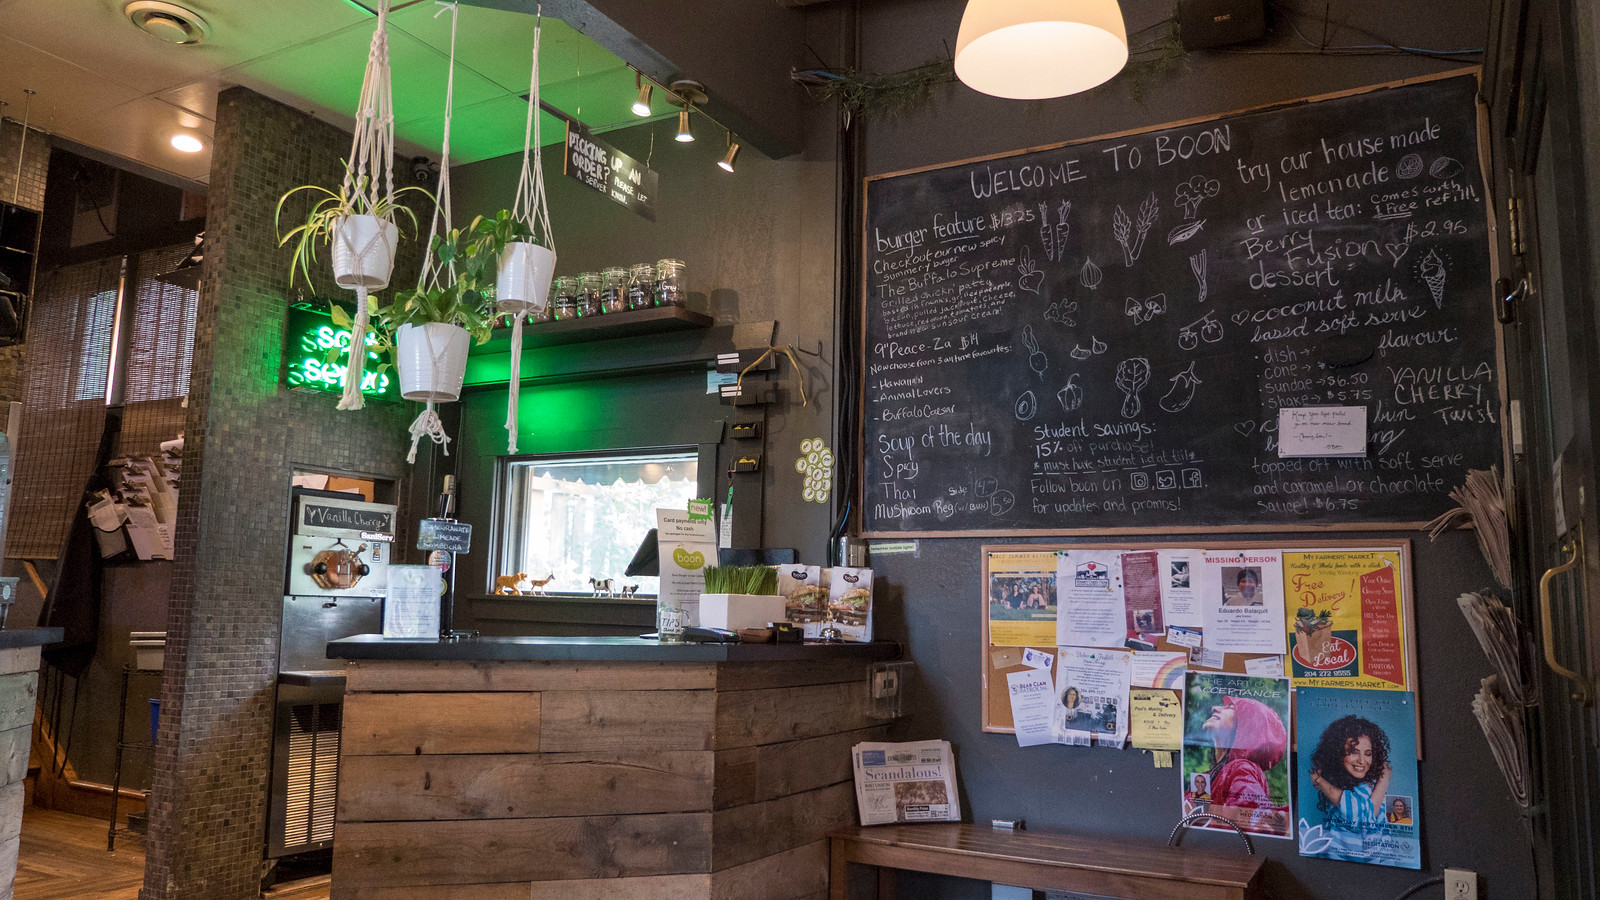 Boon Burger Winnipeg vegan restaurant - Things to Do in Winnipeg: A Couples Getaway Guide